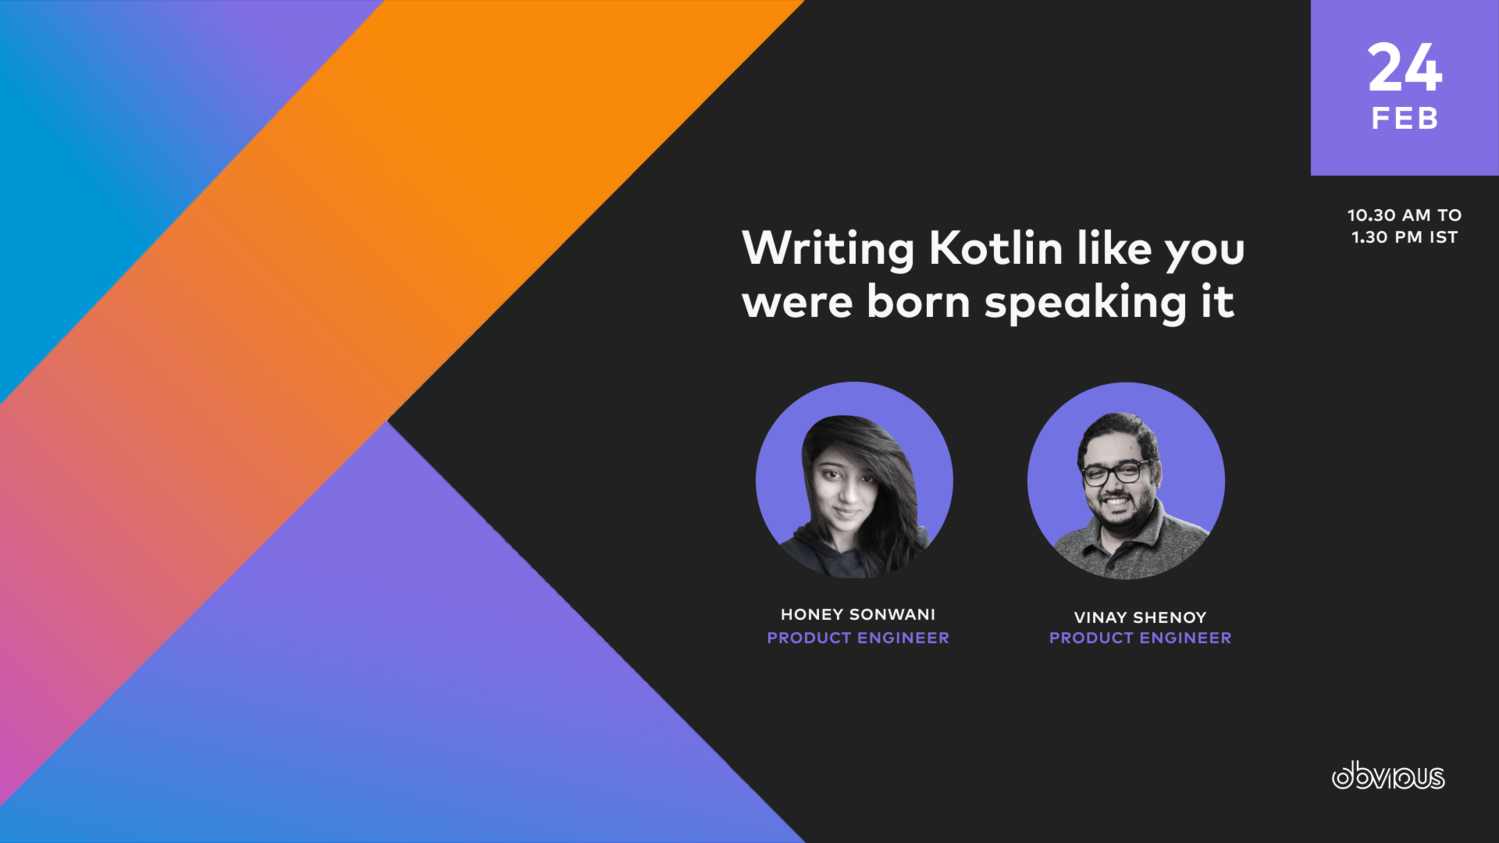 Writing Kotlin like you were born speaking it